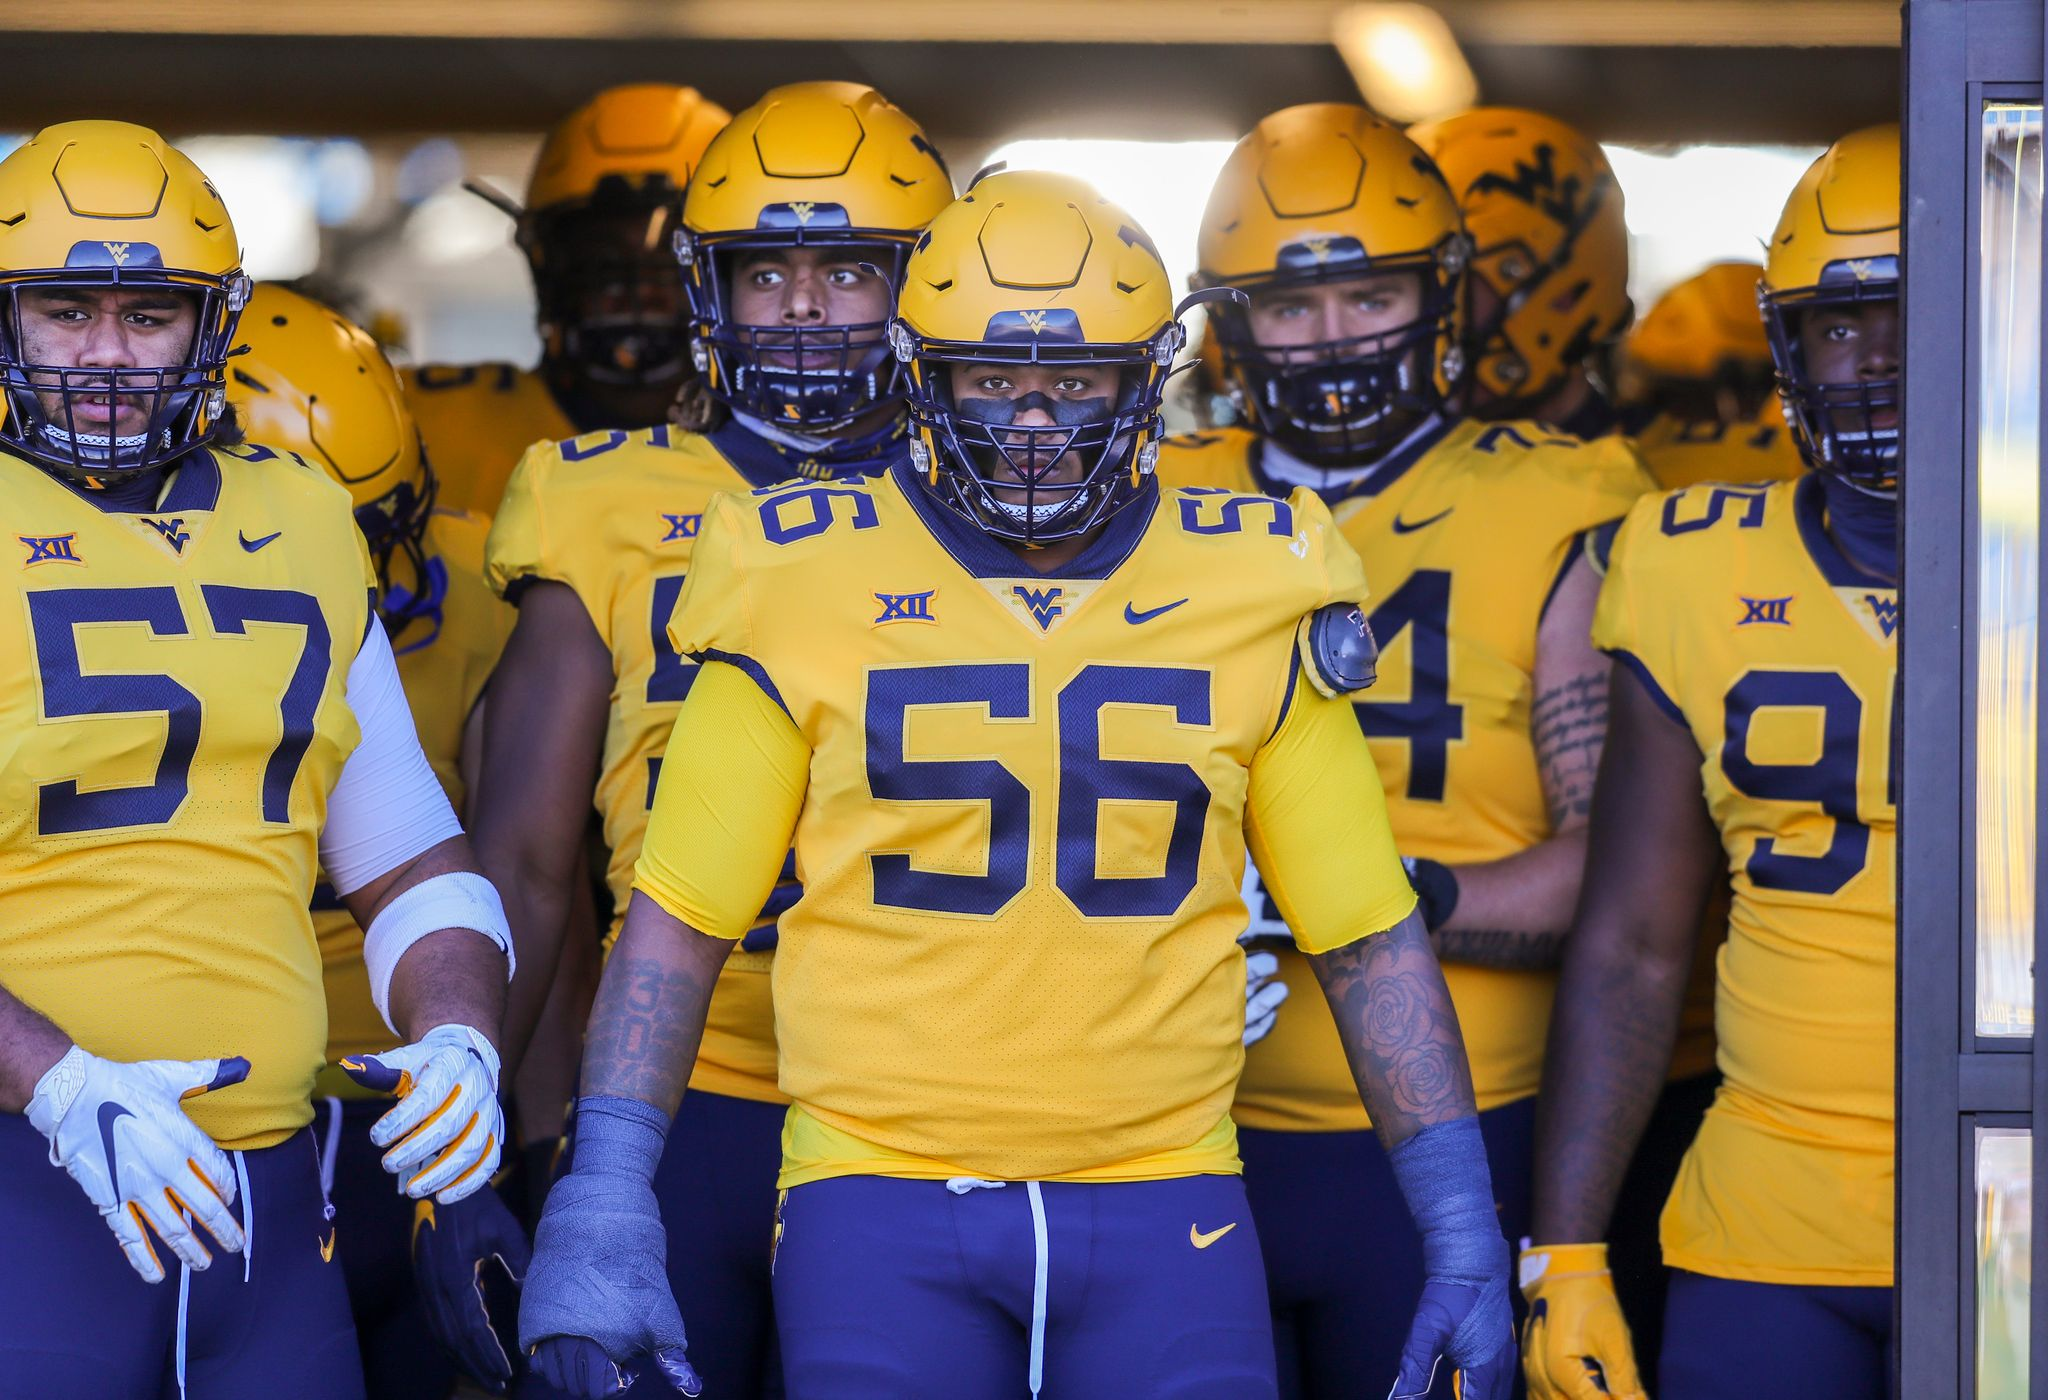 Wvu Vs Tcu To Air On Fox Kick Time Still Undetermined Wvns